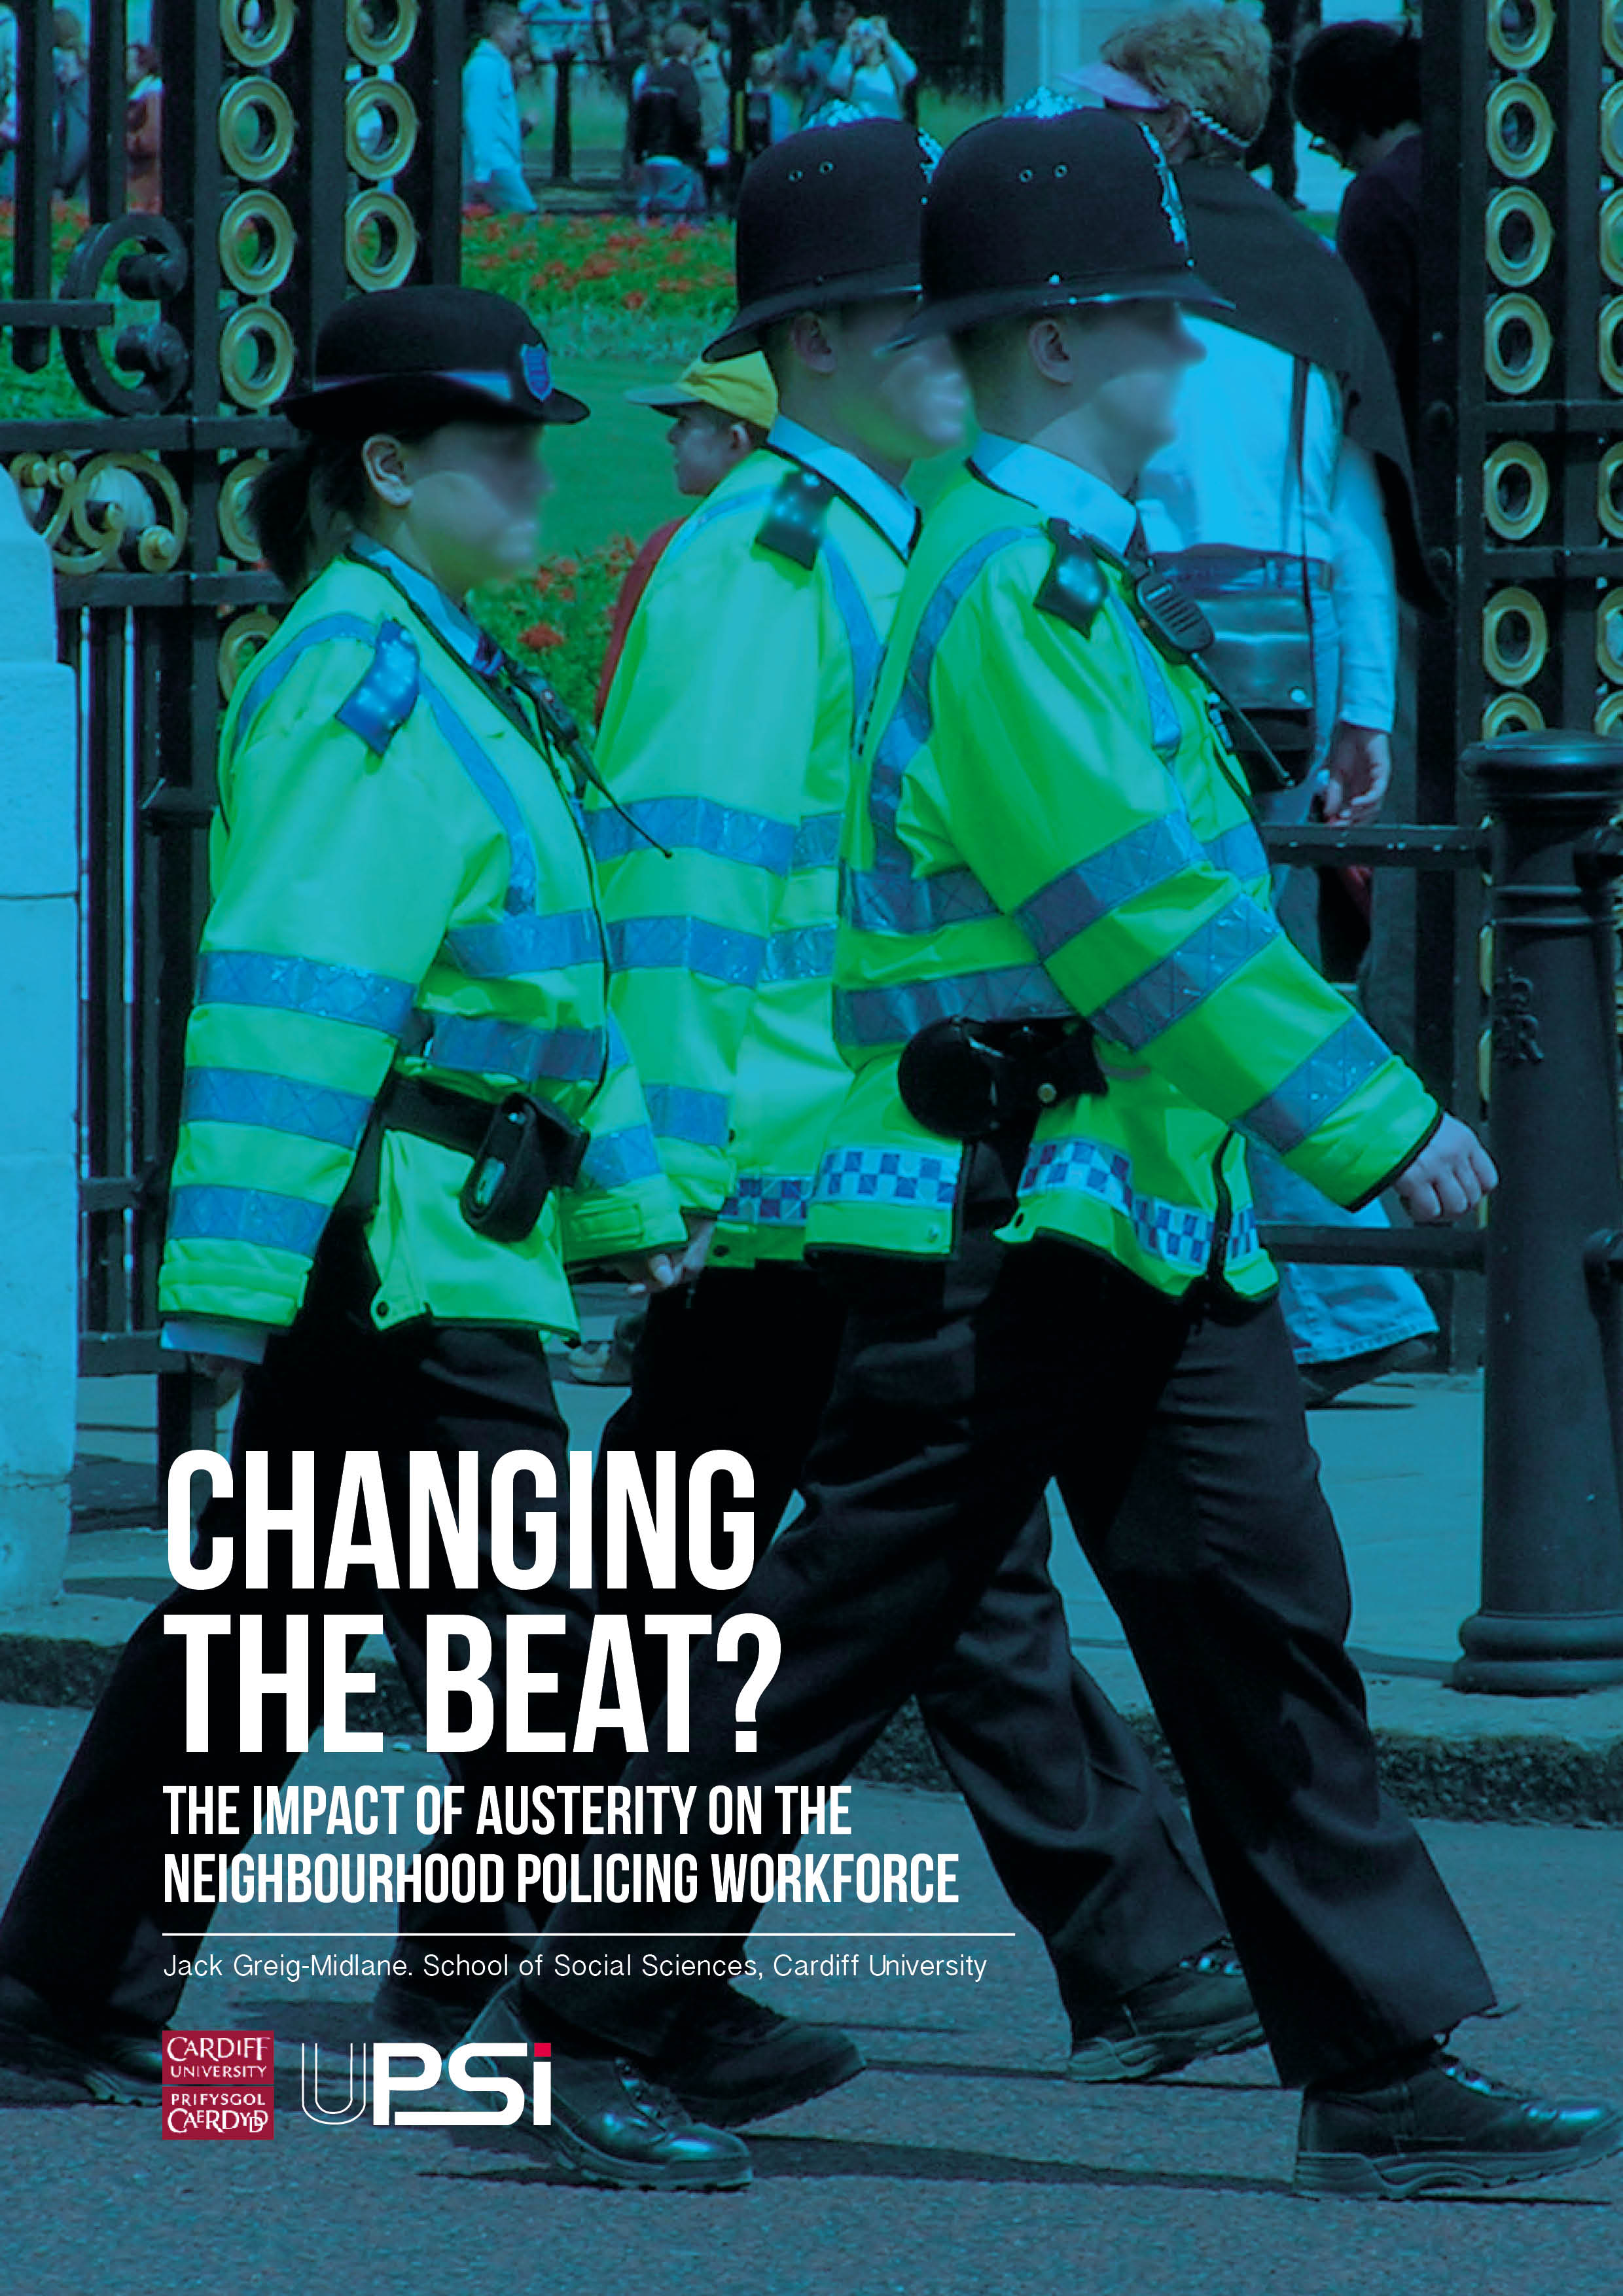 Changing the Beat? The Impact of Austerity on the Neighbourhood Policing Workforce